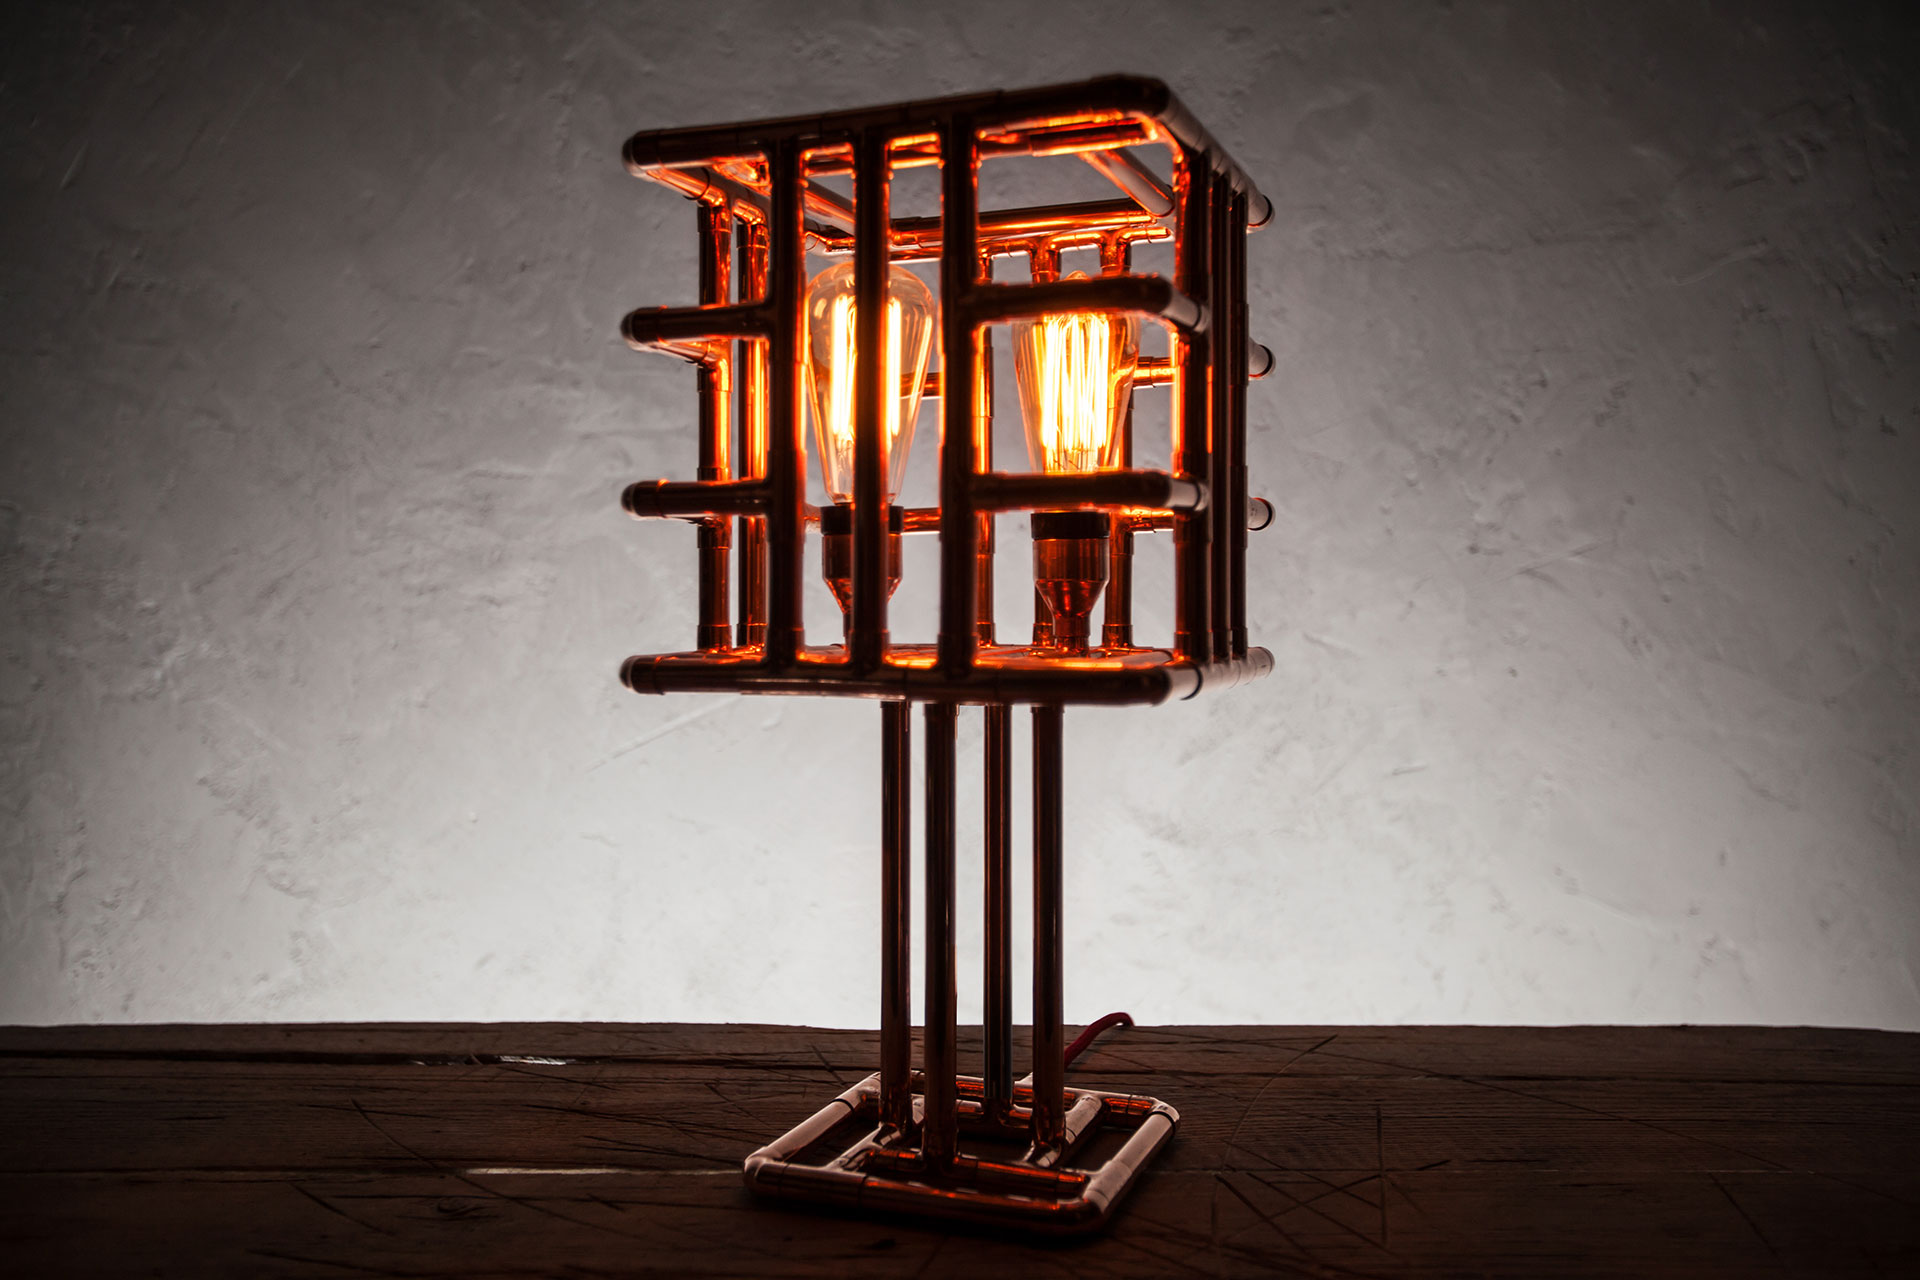 Industrial cage table lamp made of copper pipes with vintage Edison bulbs